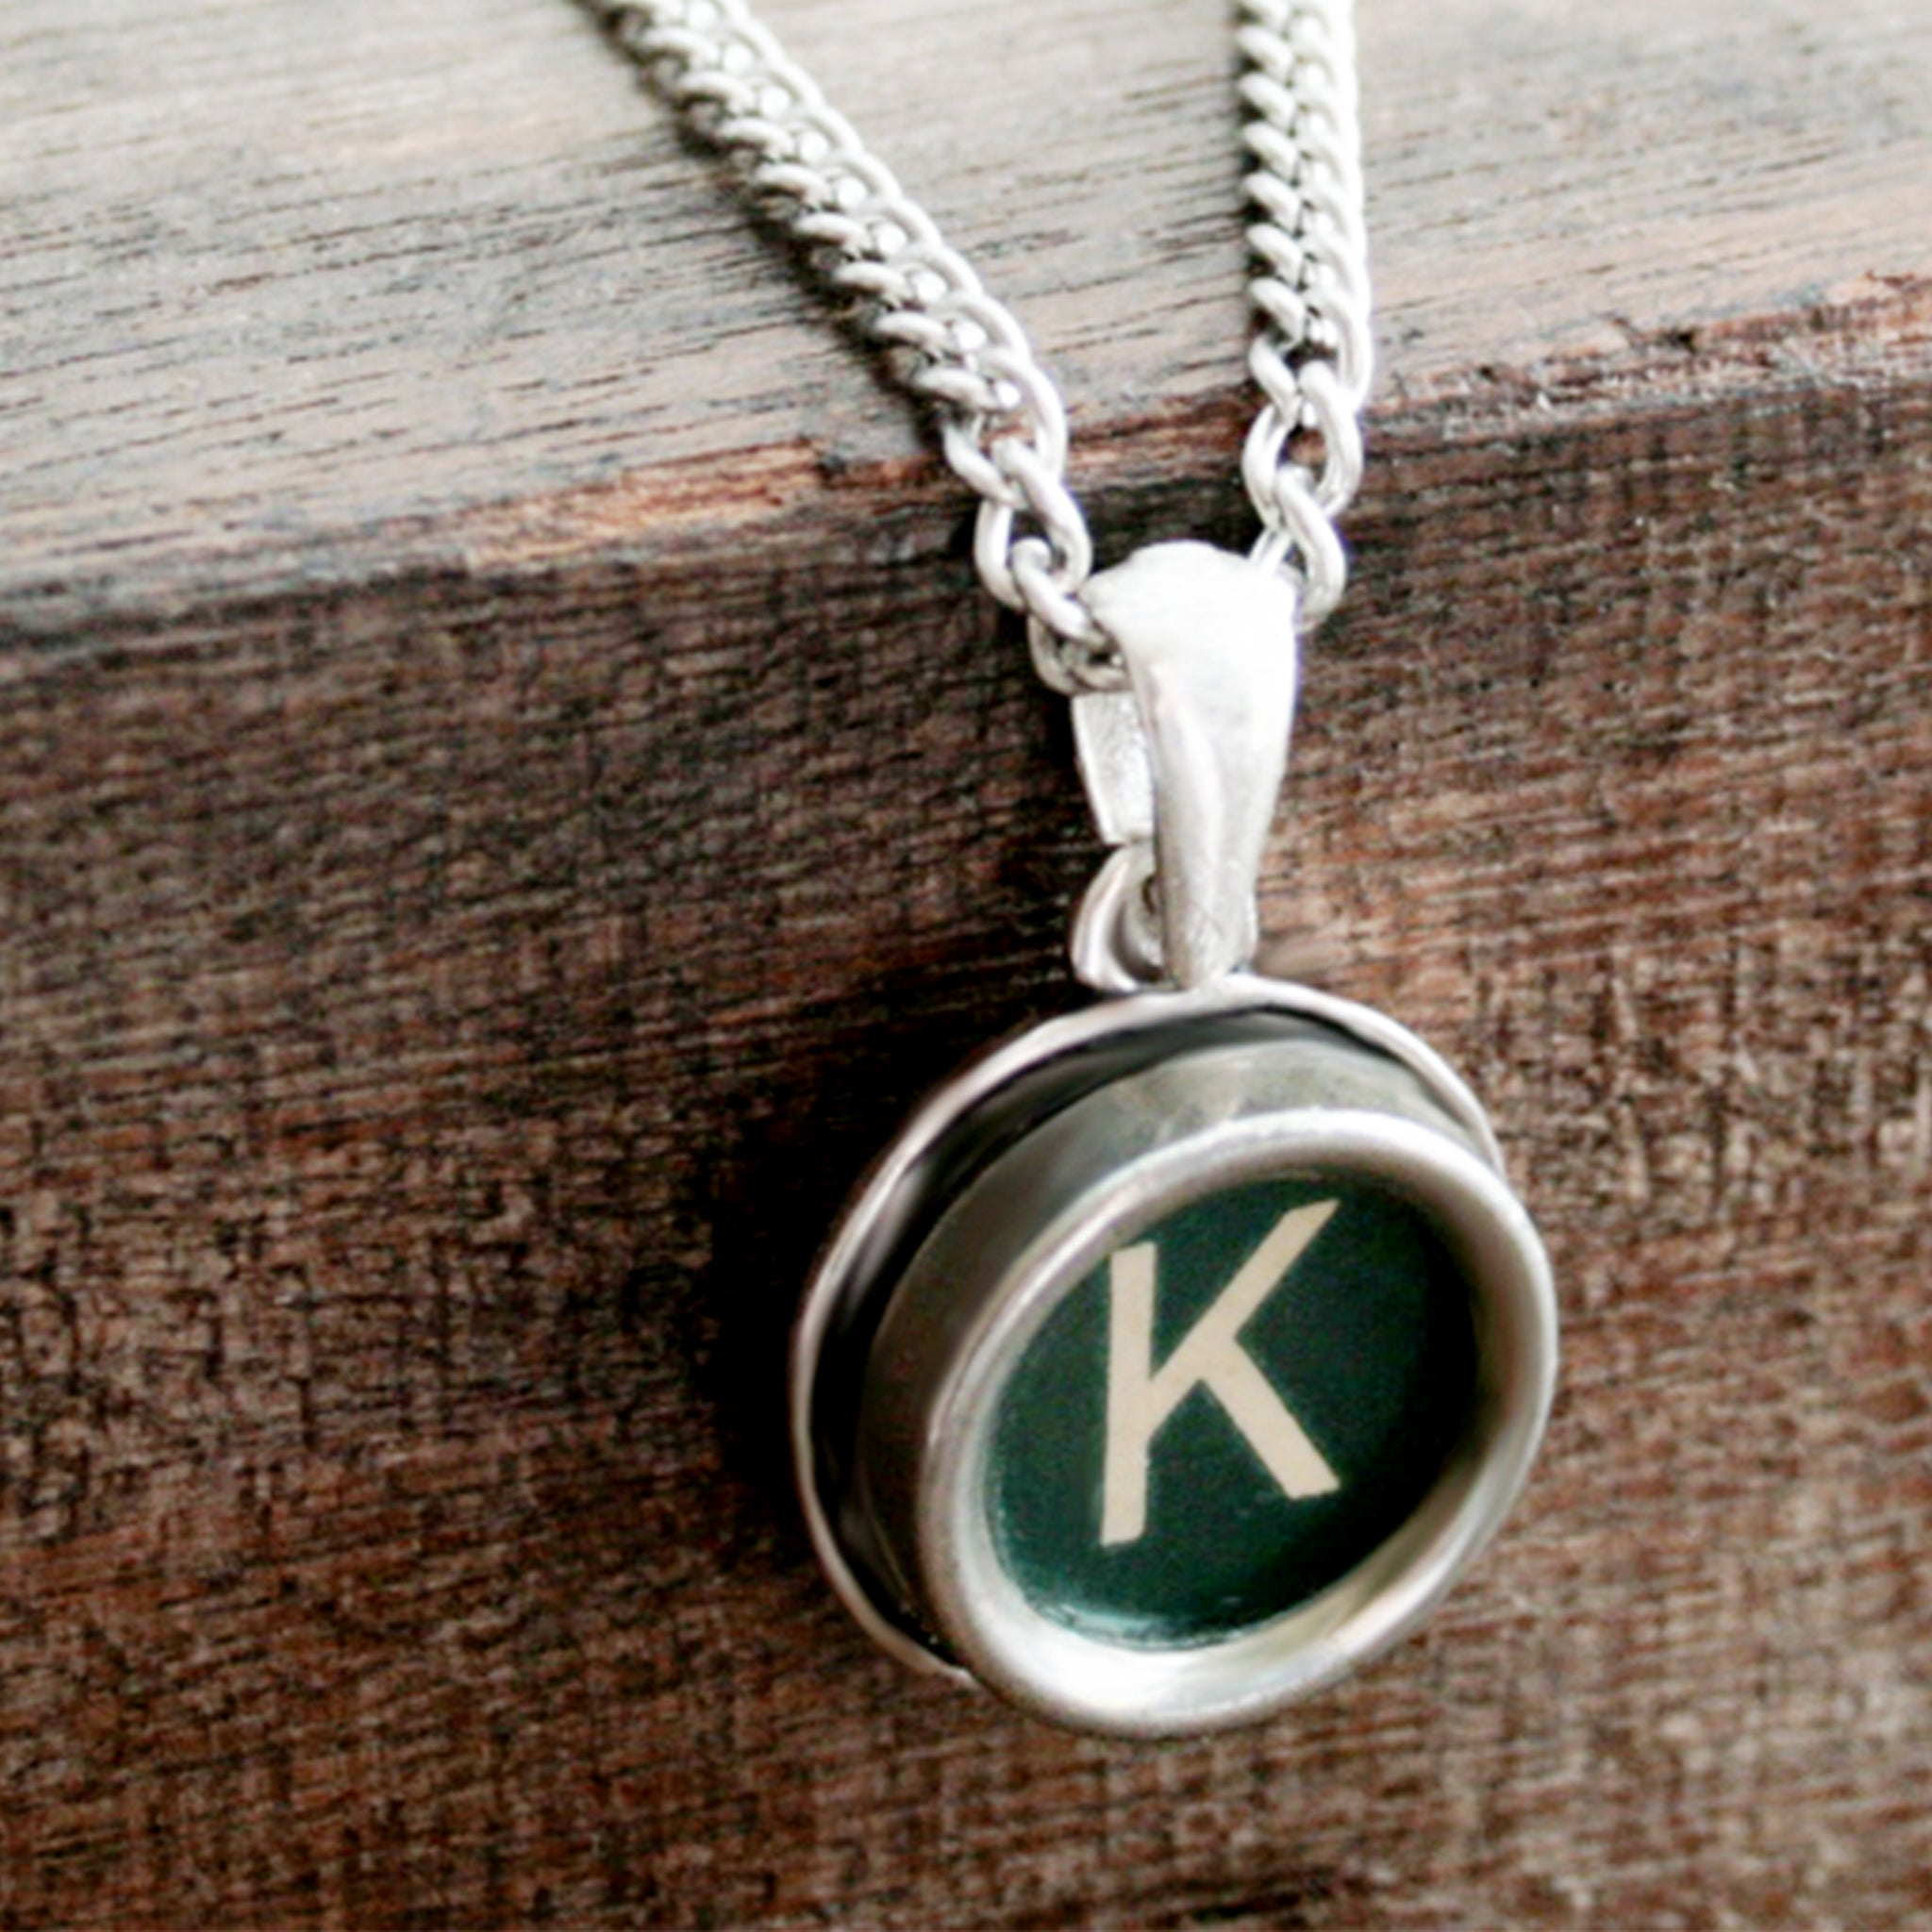 Green K letter necklace made of real typewriter key